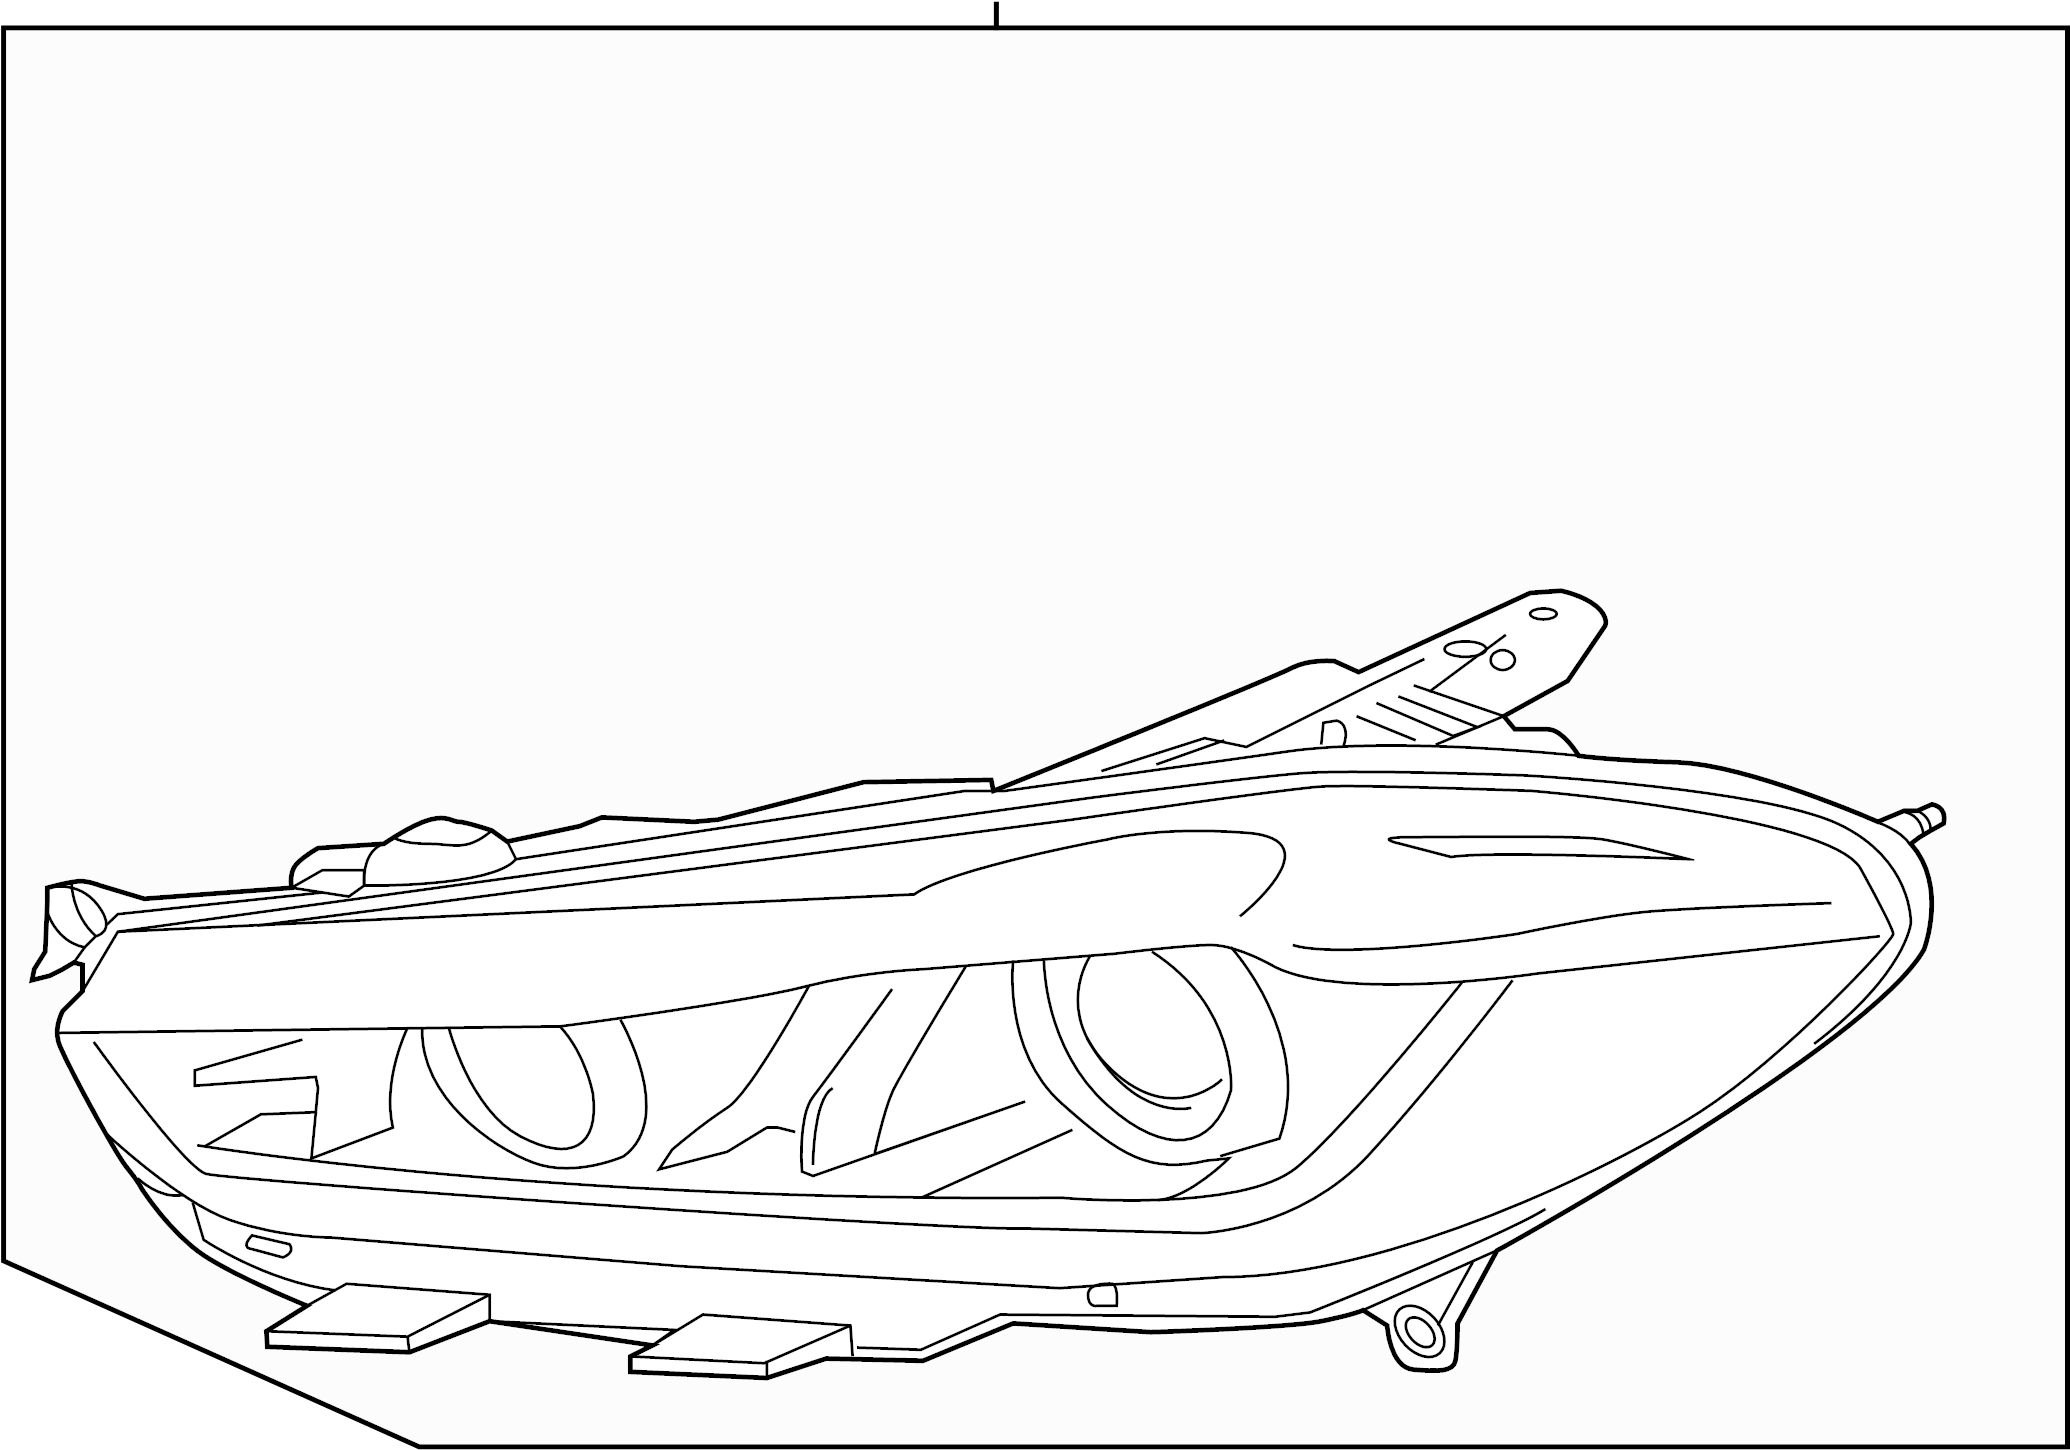 Jaguar Car Sketch as well 539869074055779395 in addition Hyundai Grand I10 10mt 2014 14785 additionally RepairGuideContent further 2005 Buick Lacrosse Test Drive And New Car Review 2005. on jaguar xe exterior